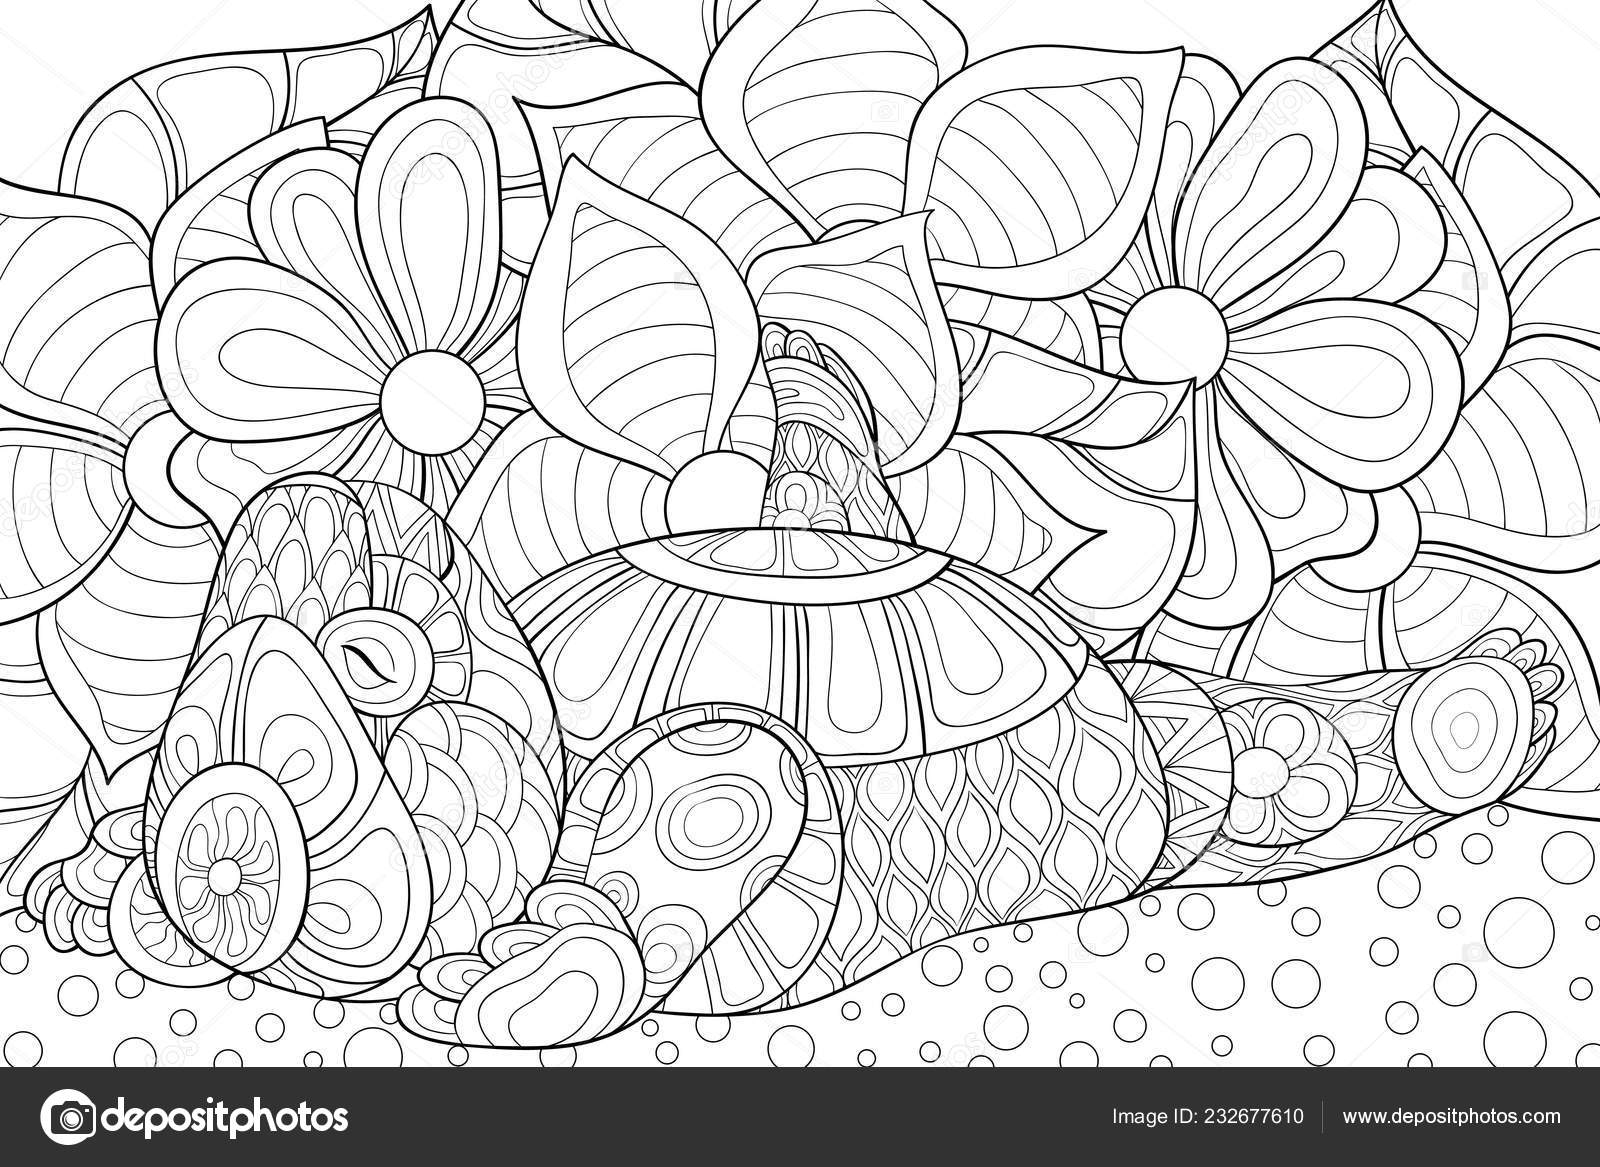 depositphotos stock illustration cute little bear floral abstract